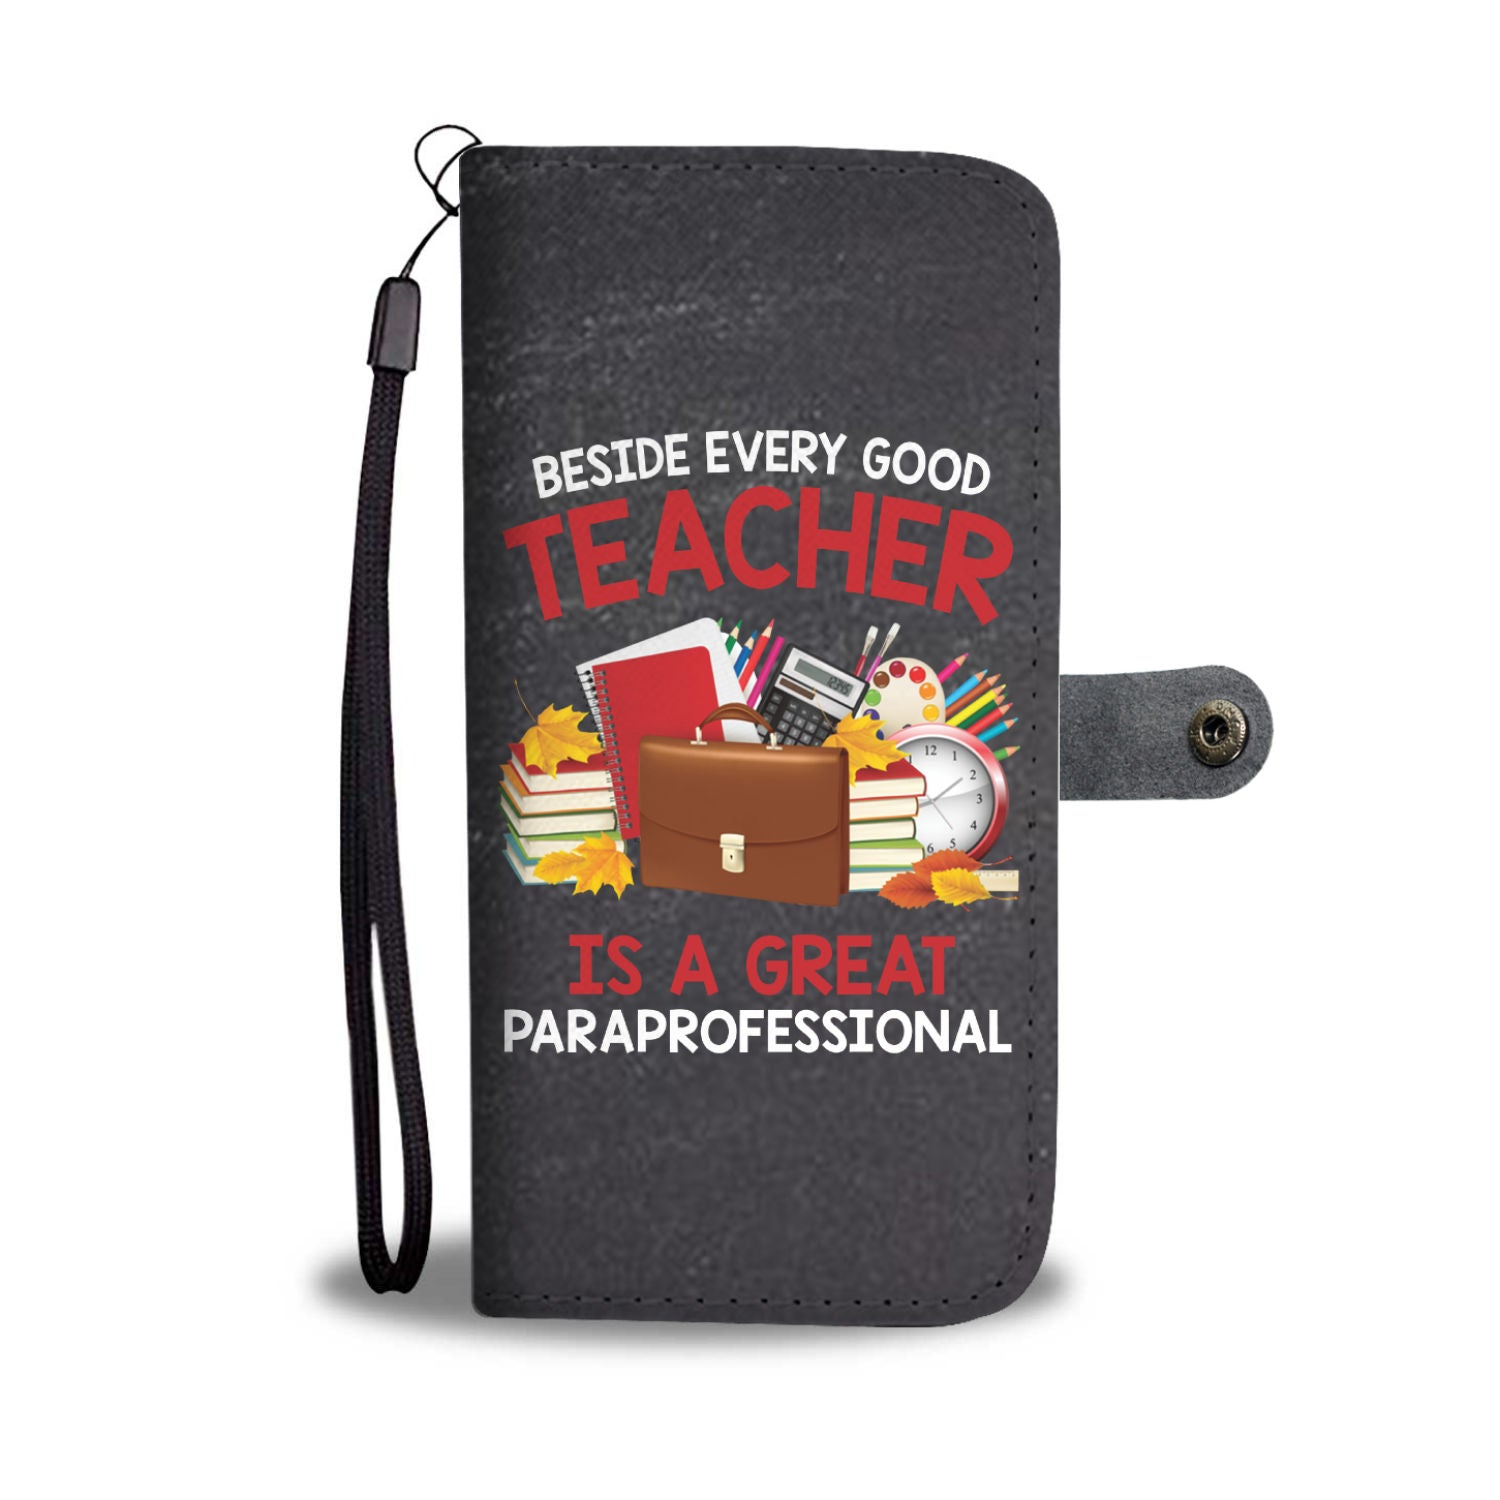 VIRA leather- like wallet case for awesome teachers & professionals